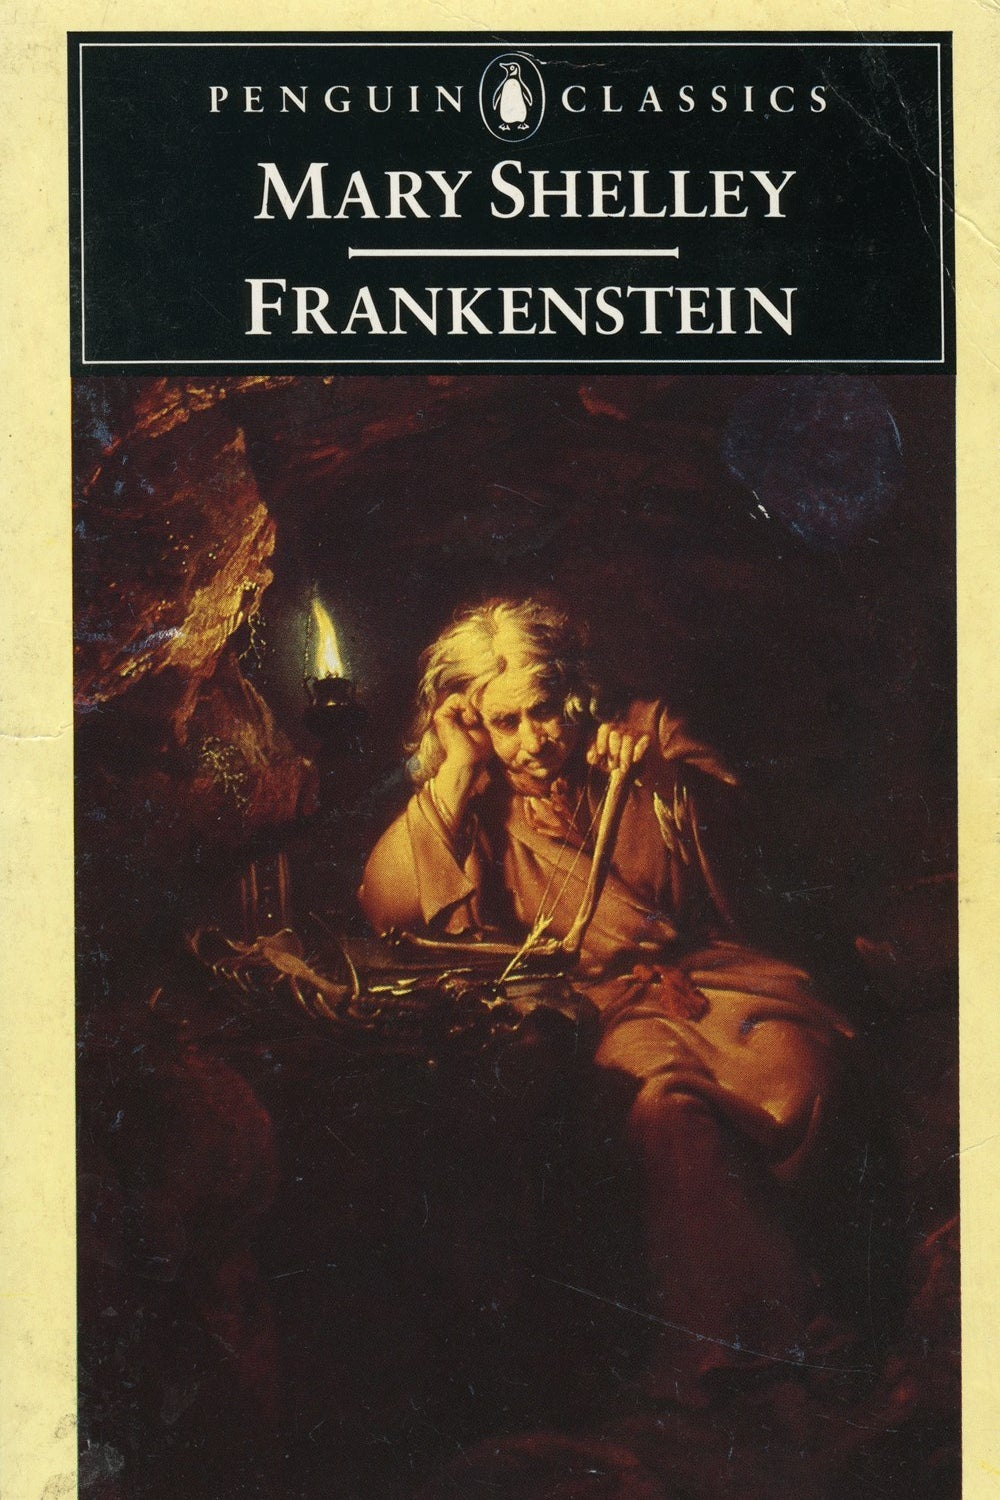 an analysis of the idea of man creating another man in the epic novel frankenstein